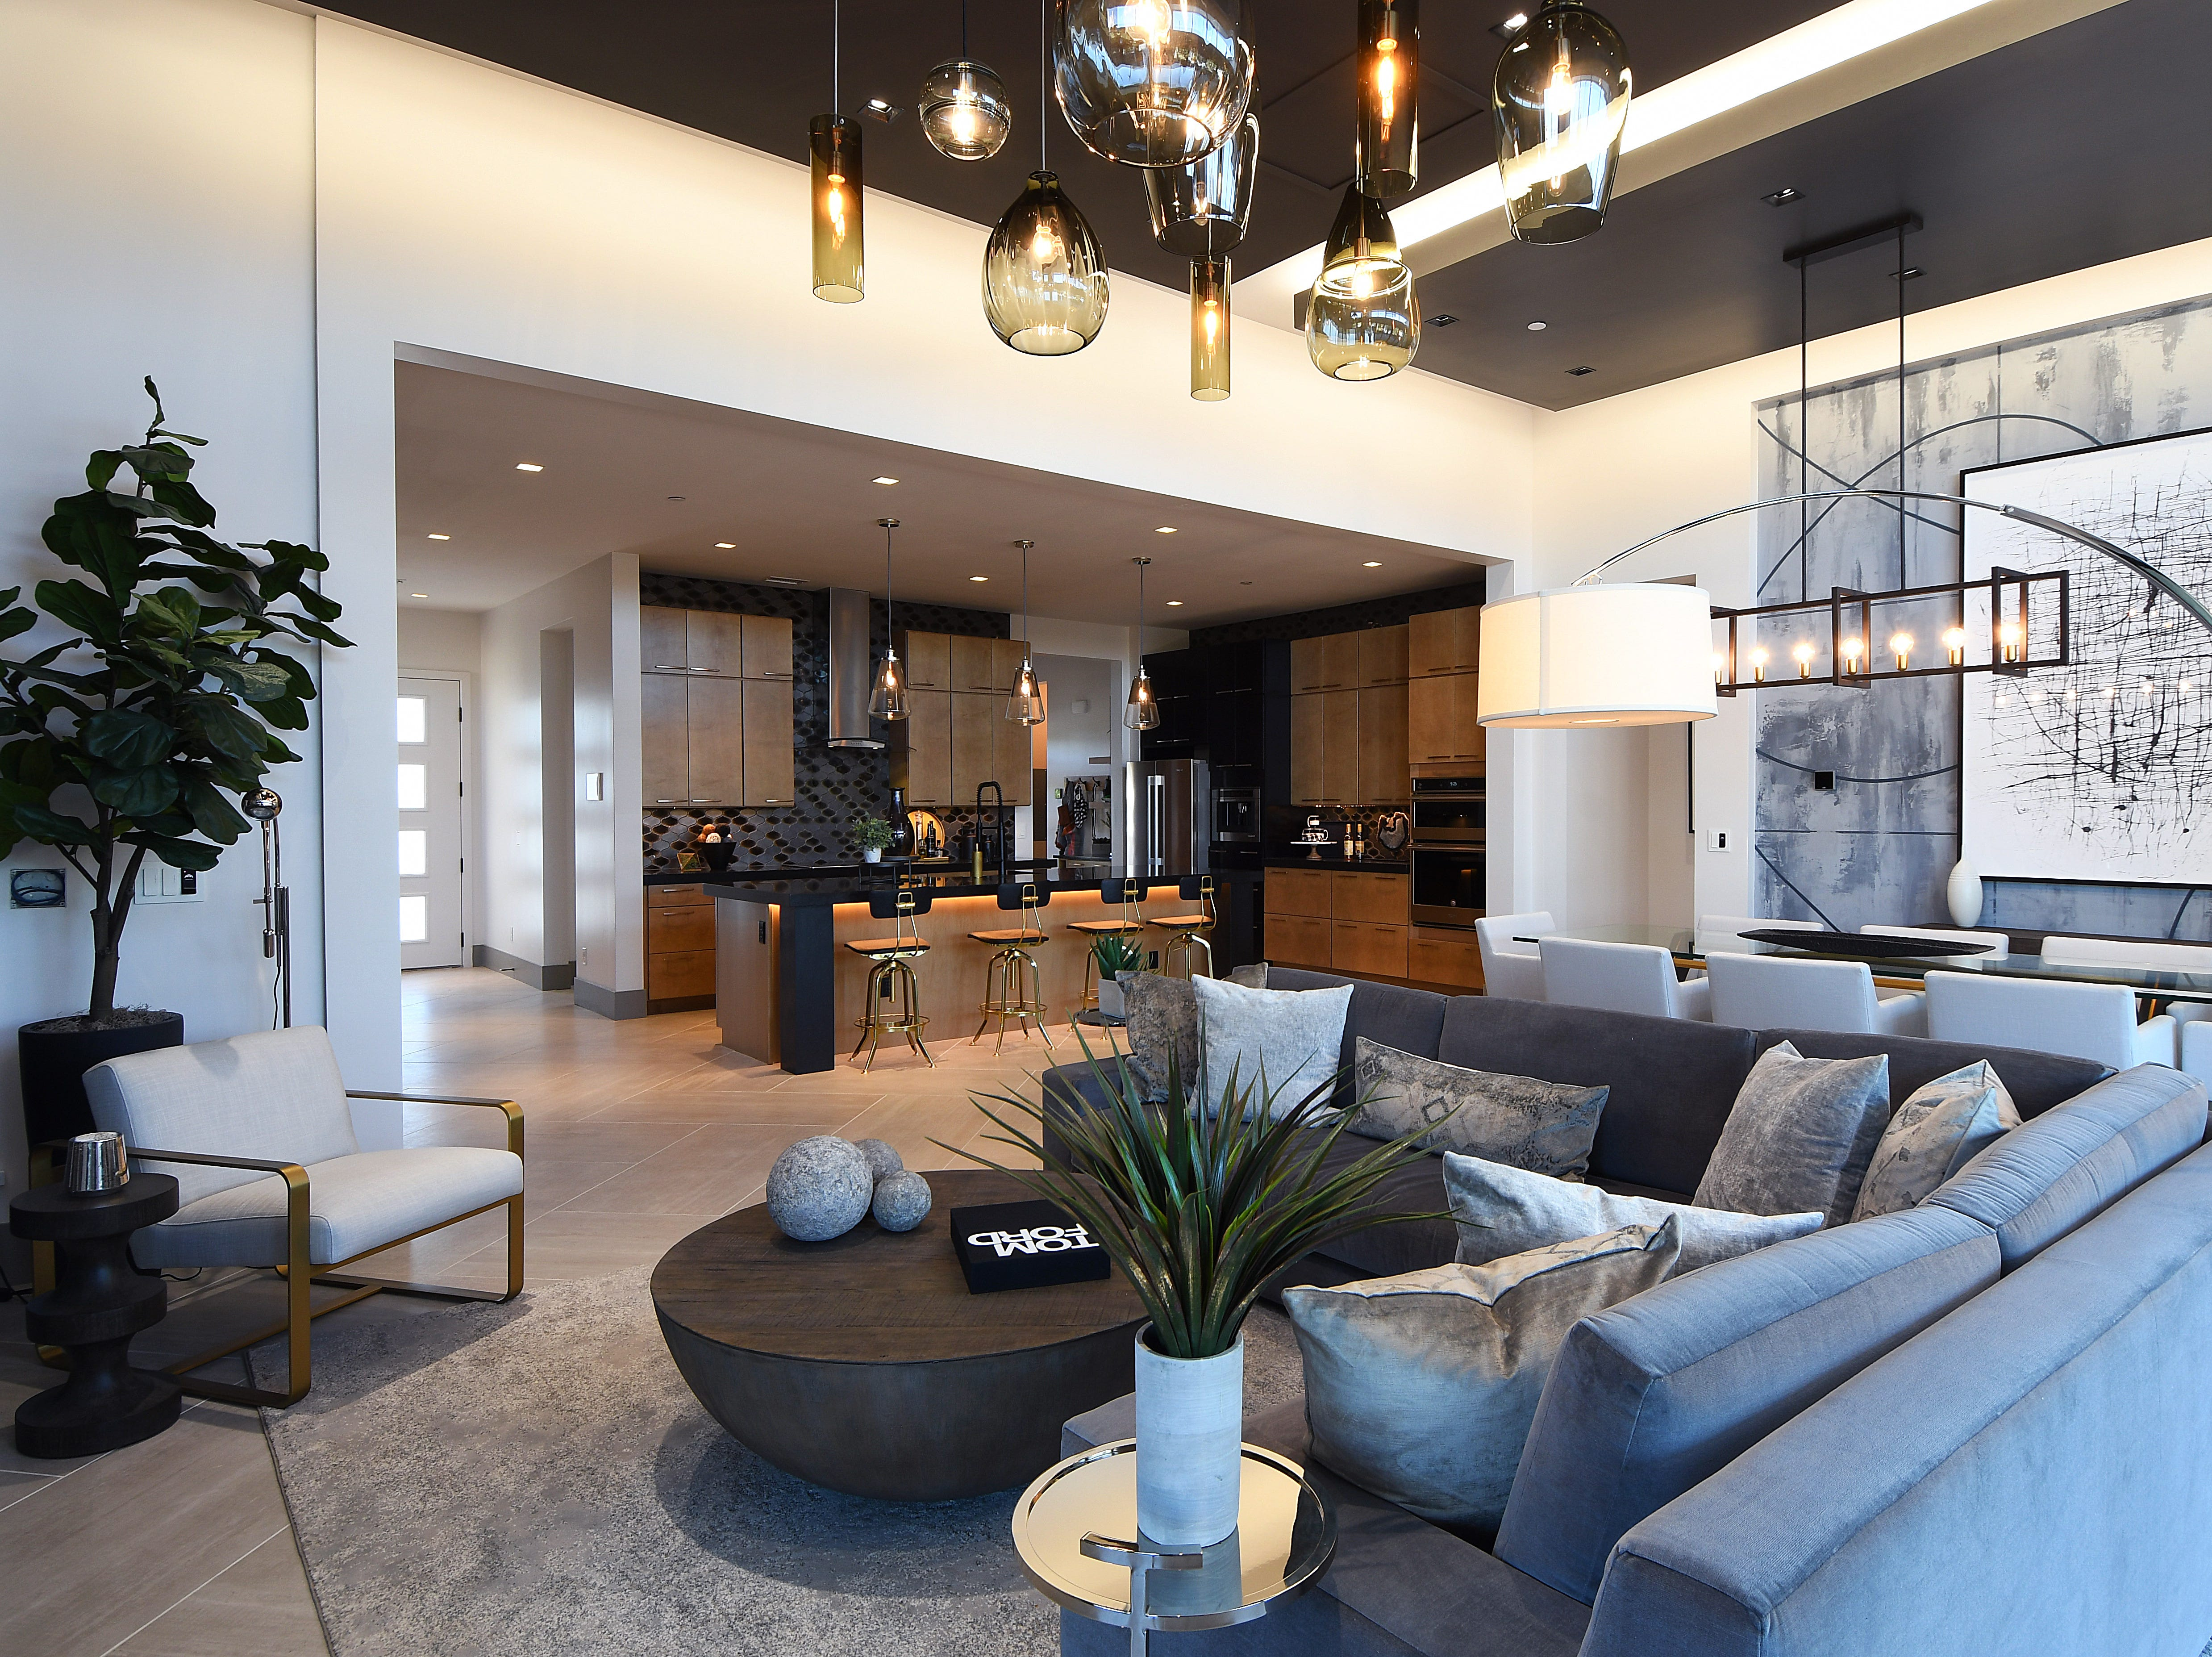 The living room and dining area in the KB Projekt smart home.